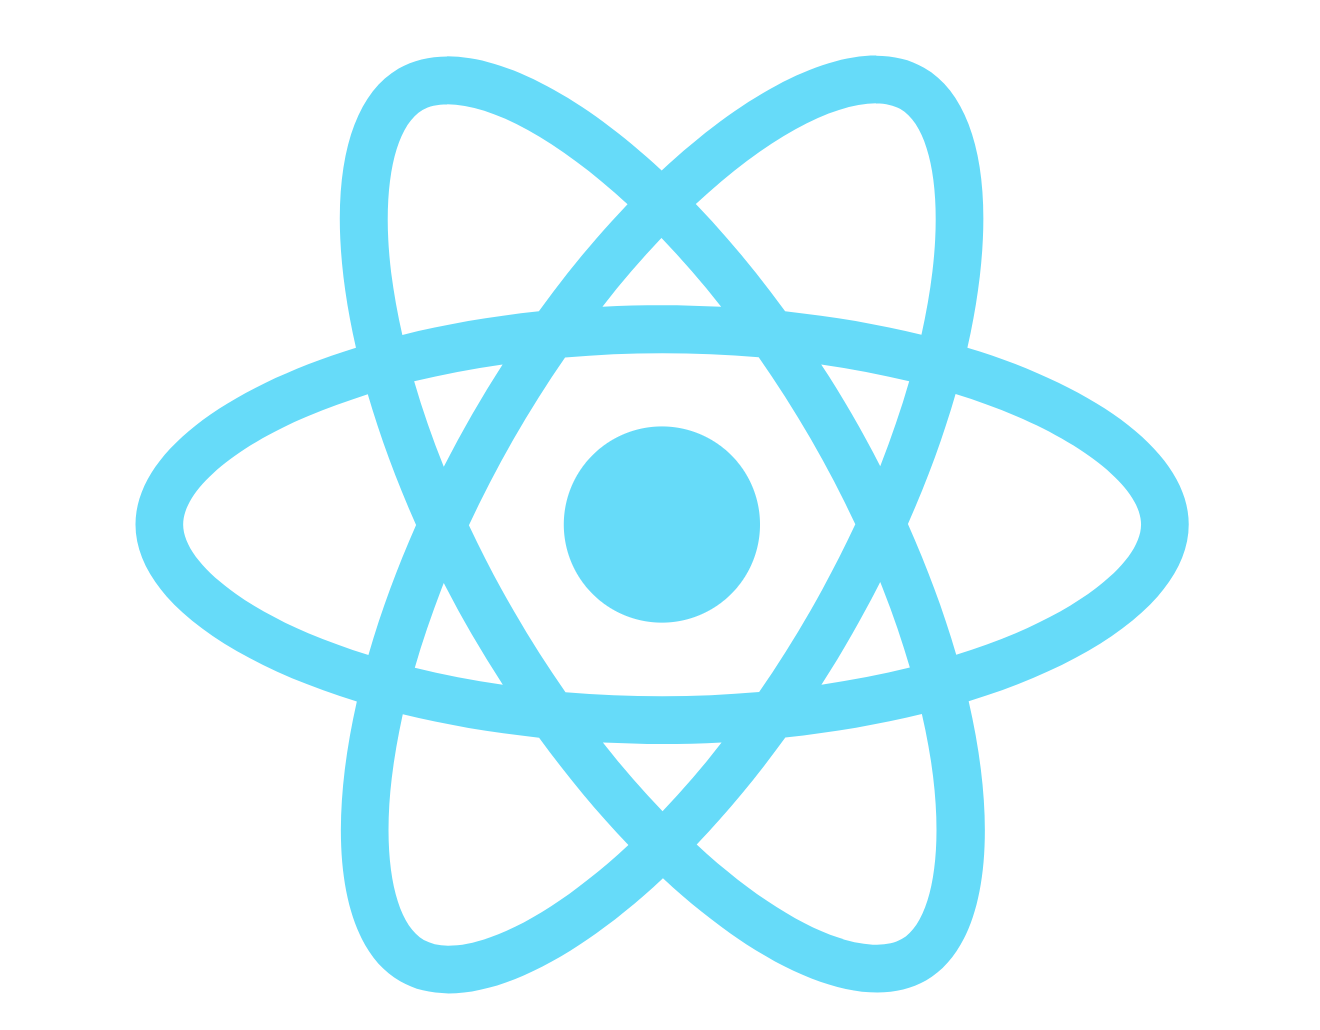 Upgrade your React UI with state machines 💡